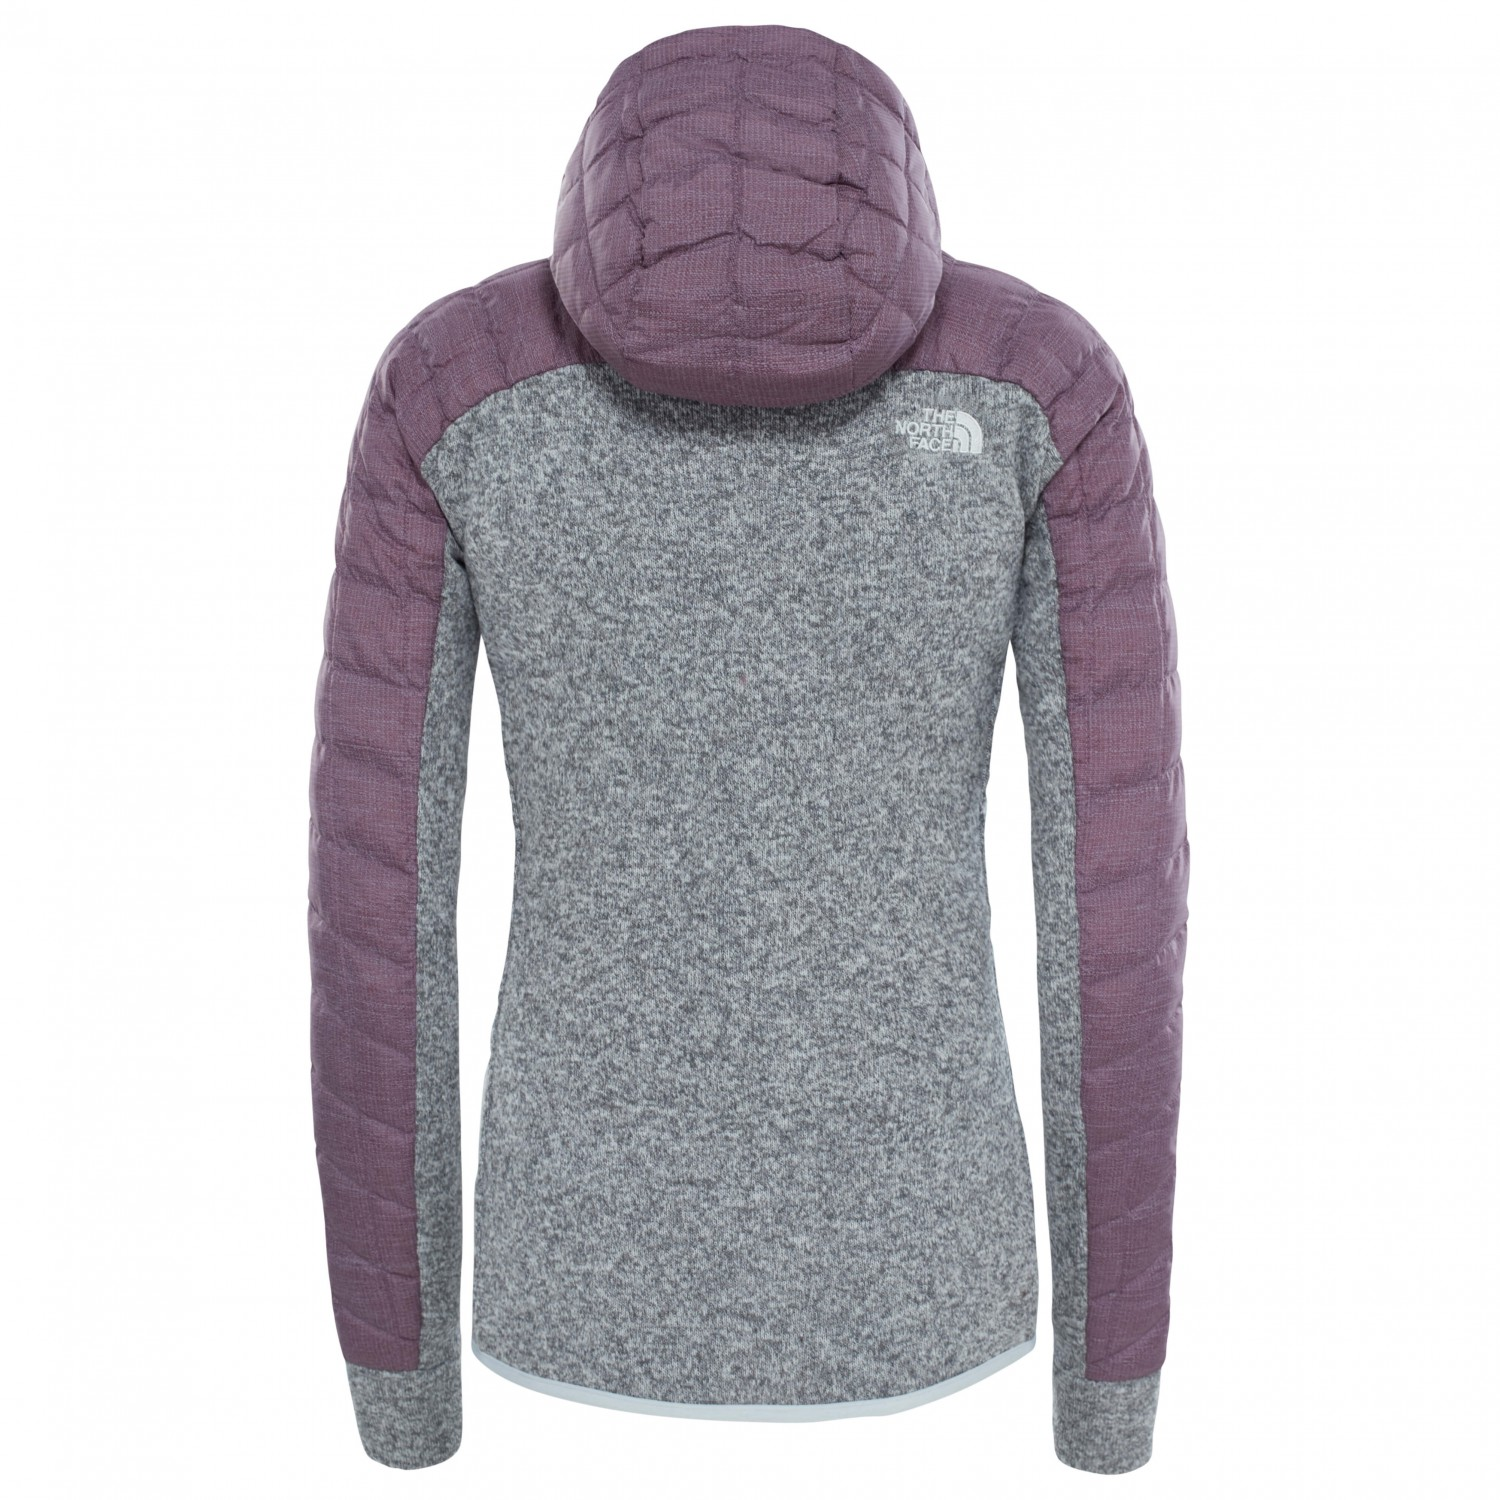 d9184e6439 The North Face - Women's Thermoball Gordon Lyons Hoodie - Veste synthétique  ...